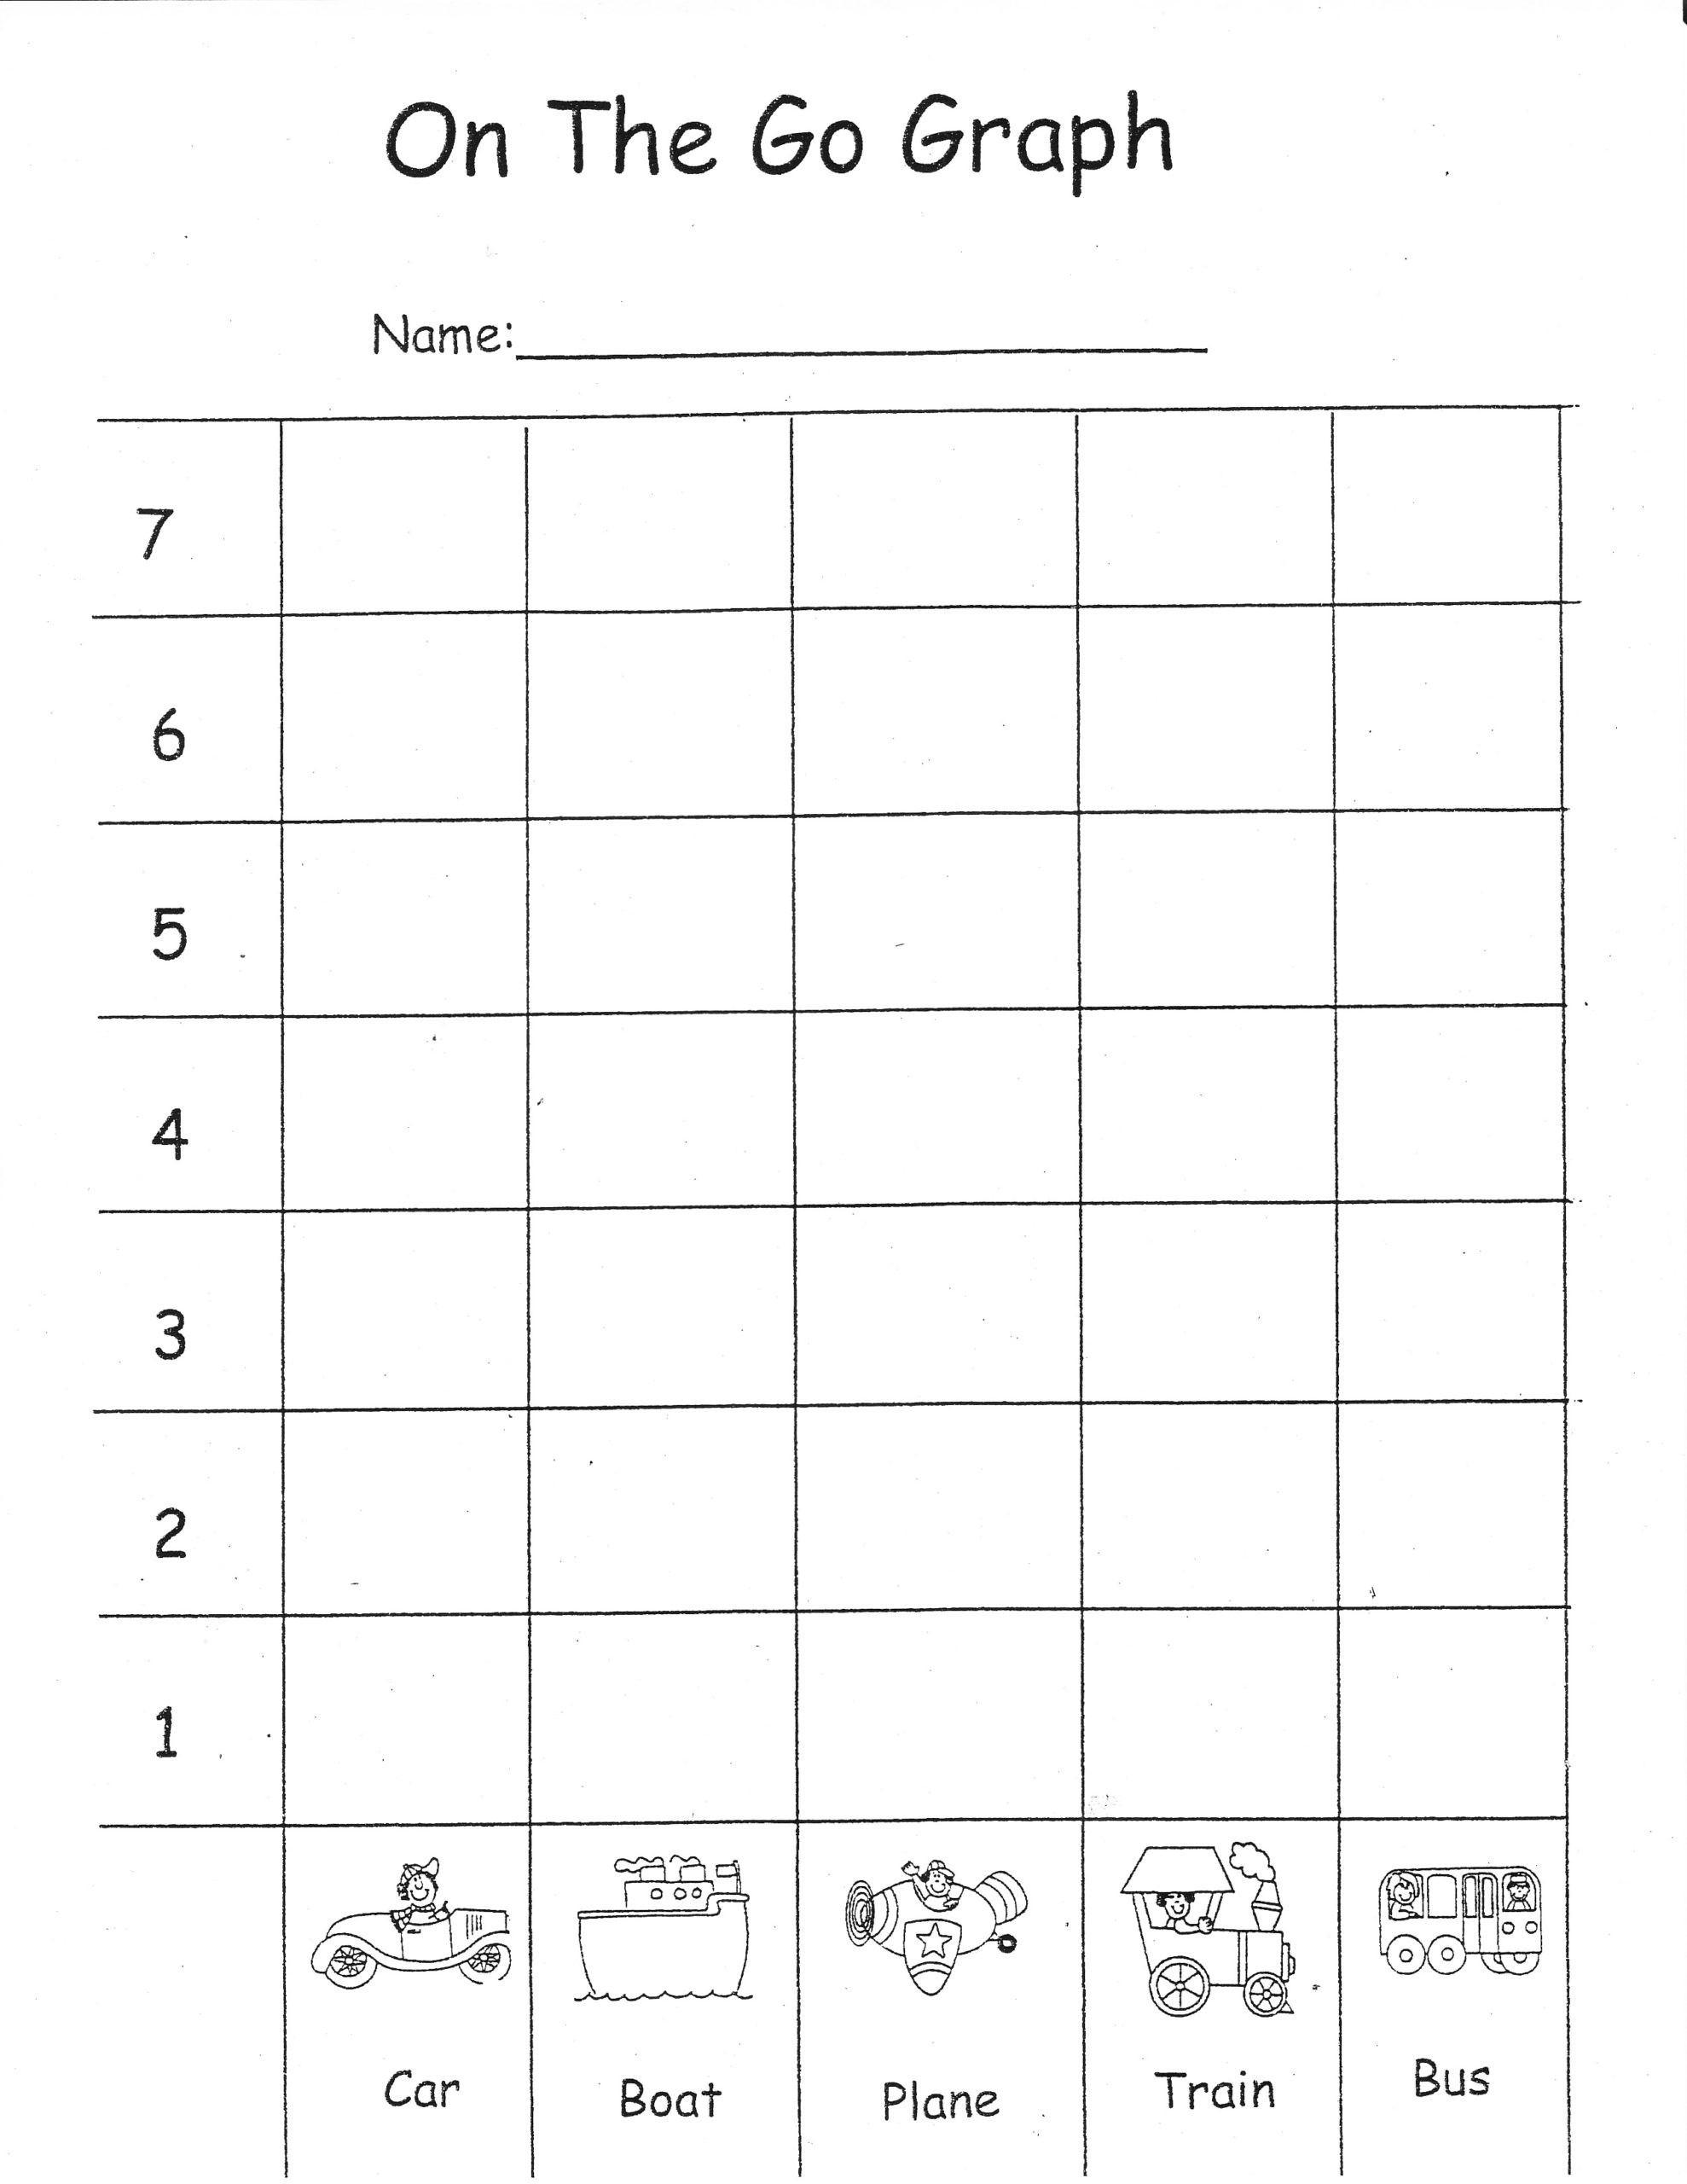 Rhyming Worksheets 1st Grade Worksheet Jr Kg Poem for Recitation 1st Grade Books Pre